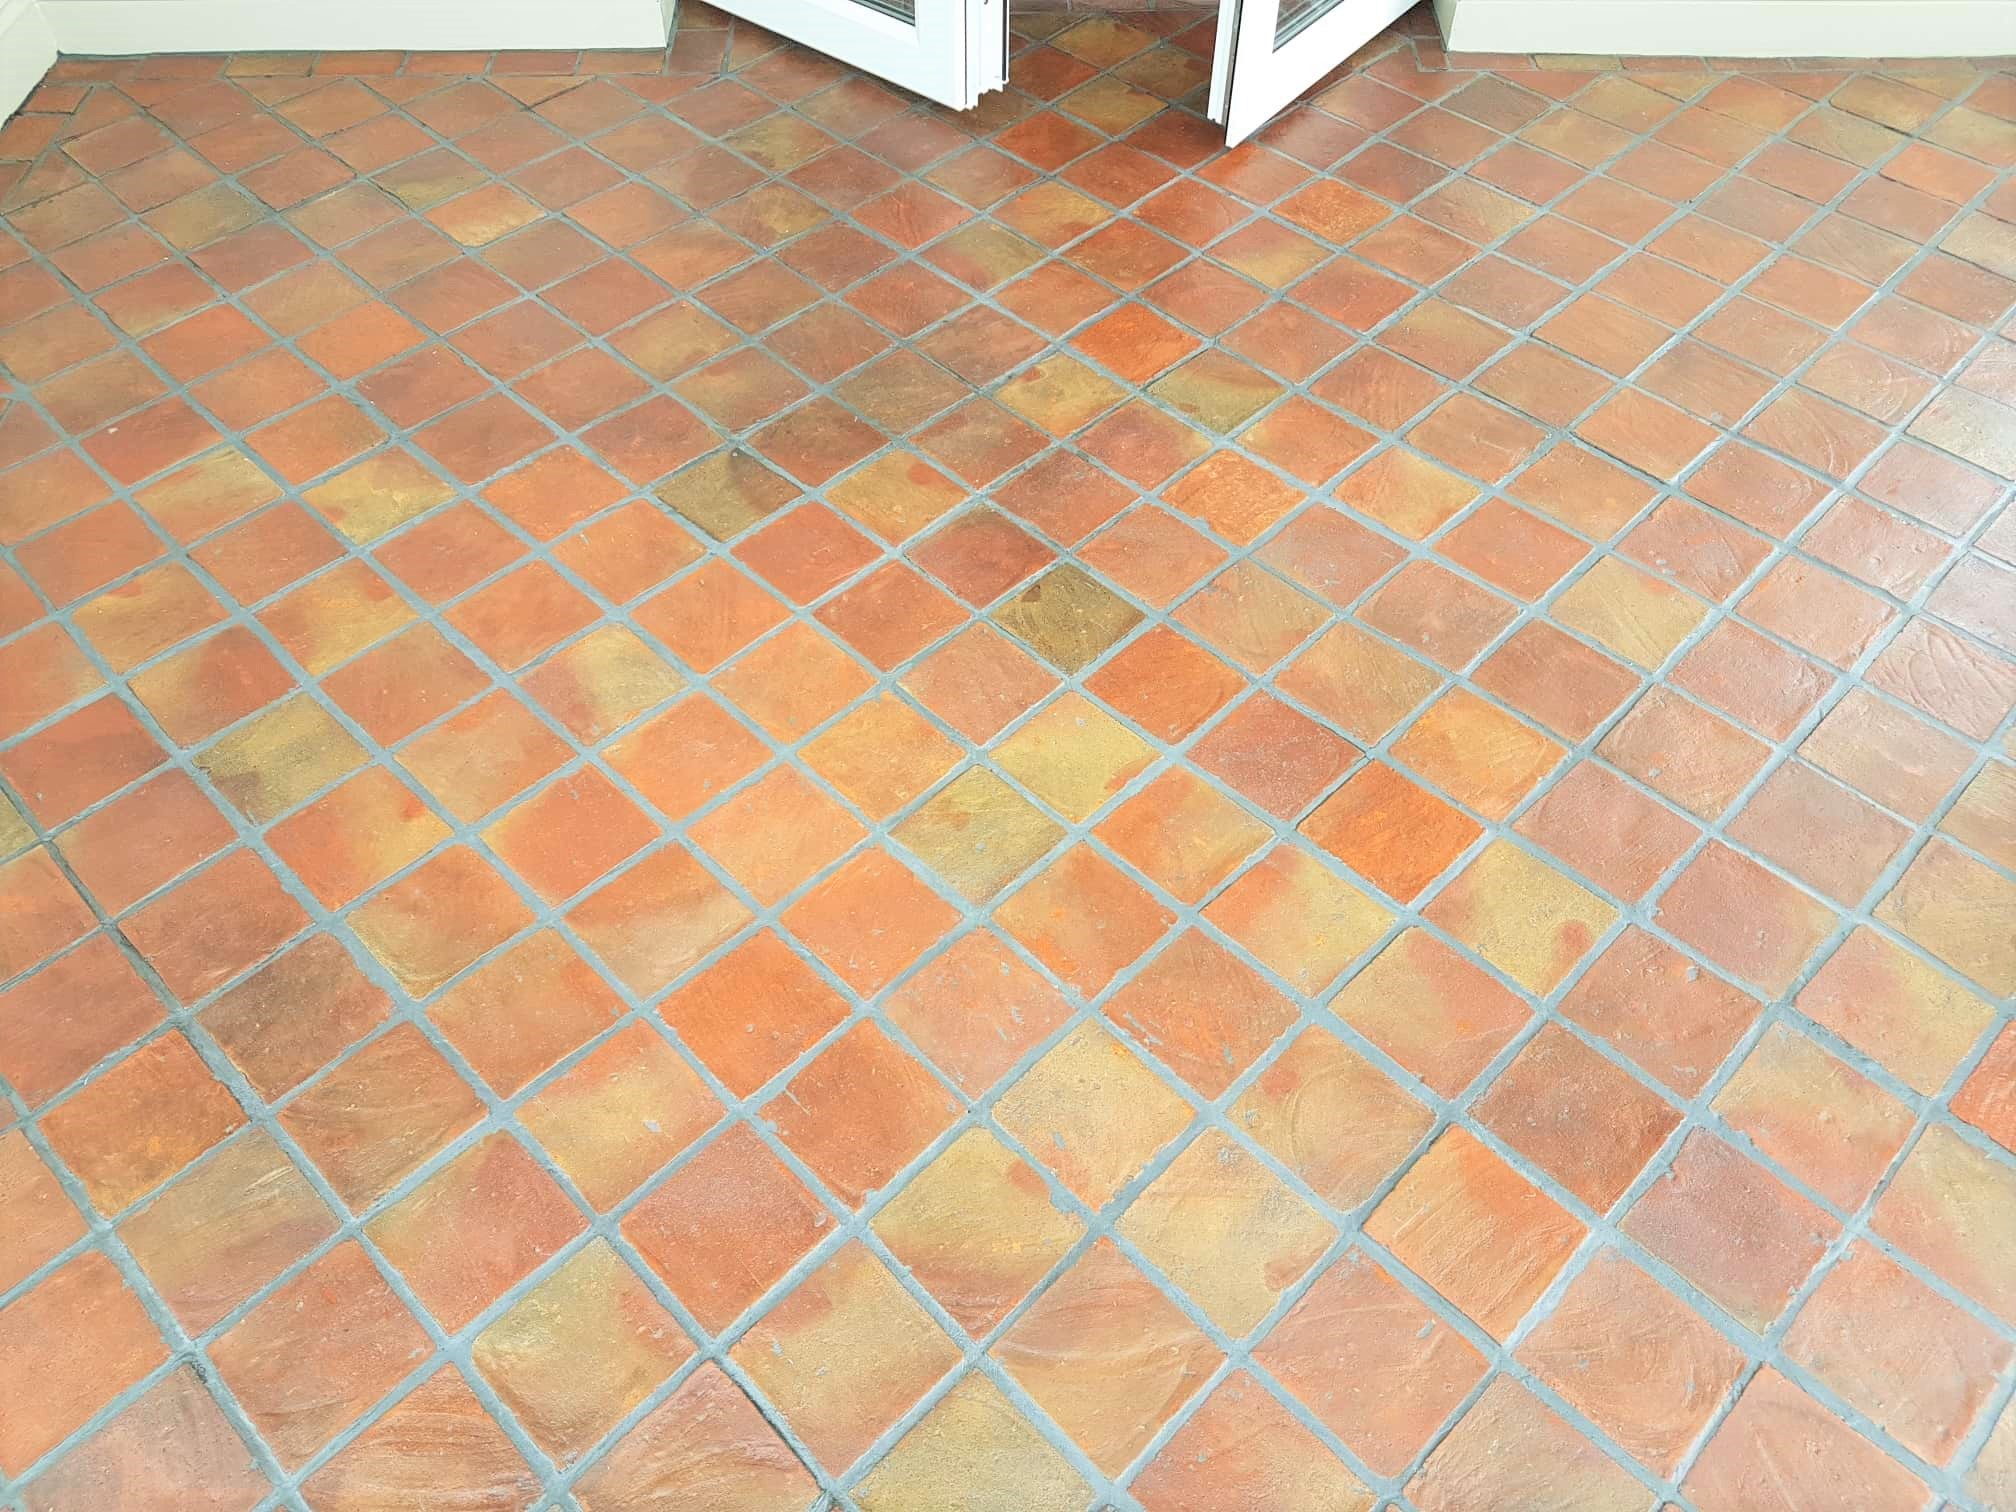 Terracotta Tiled Floor After Grout Haze removal in a Bramhope Conservatory